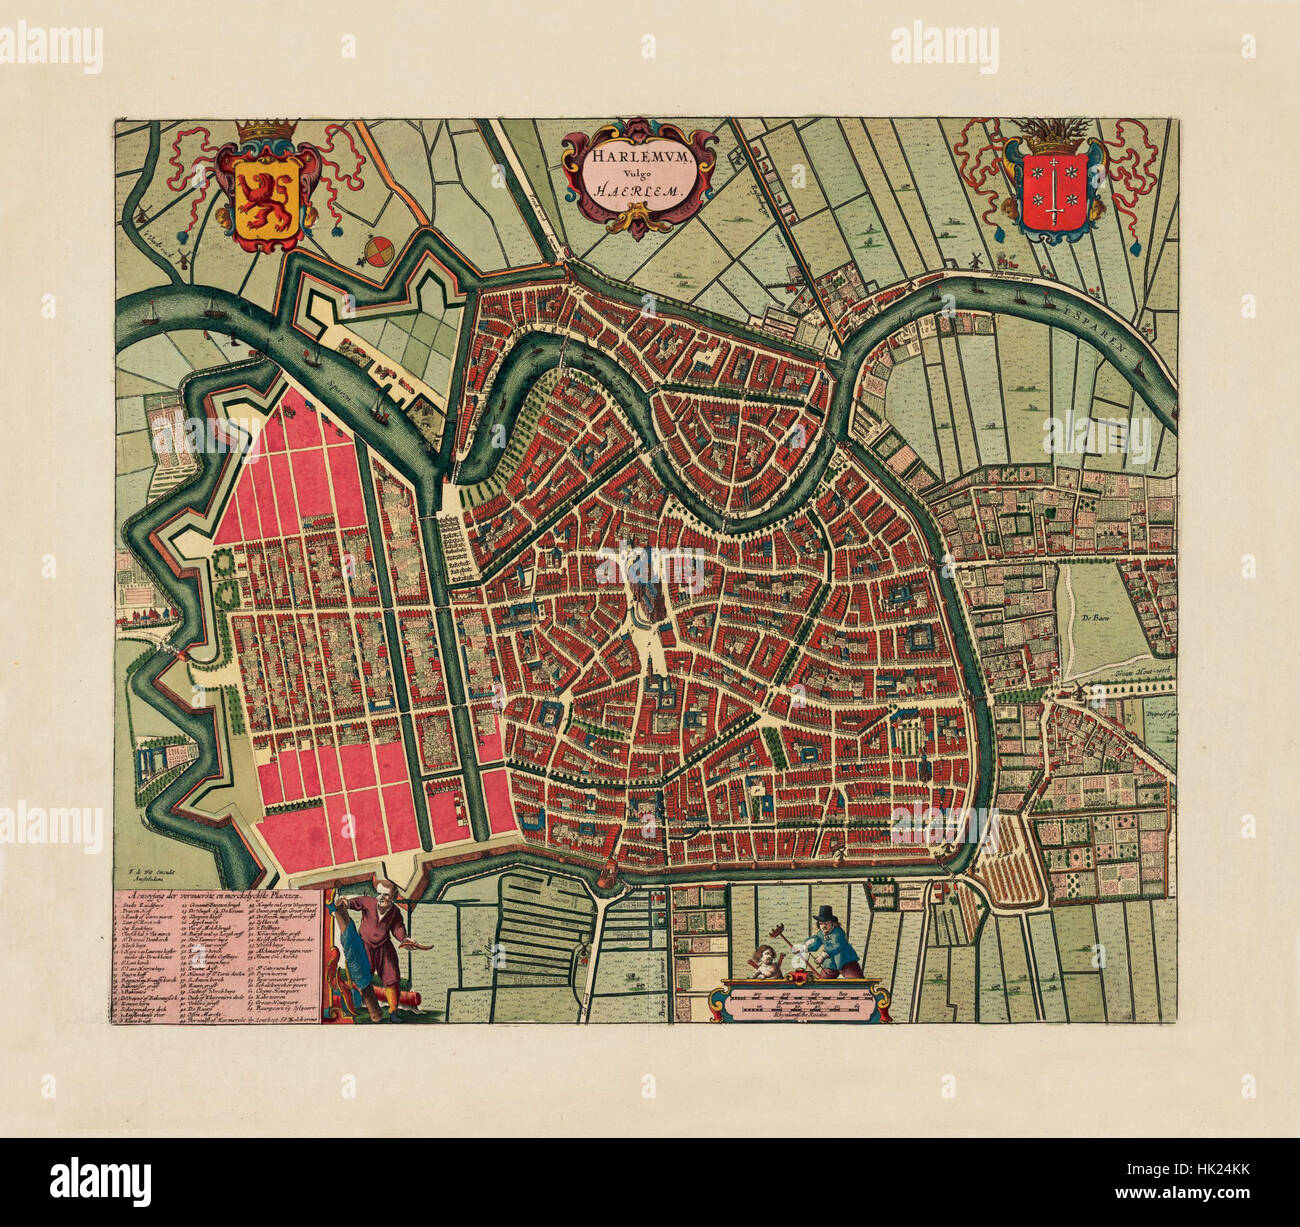 Map Of Haarlem 1695 Stock Photo: 132198631 - Alamy